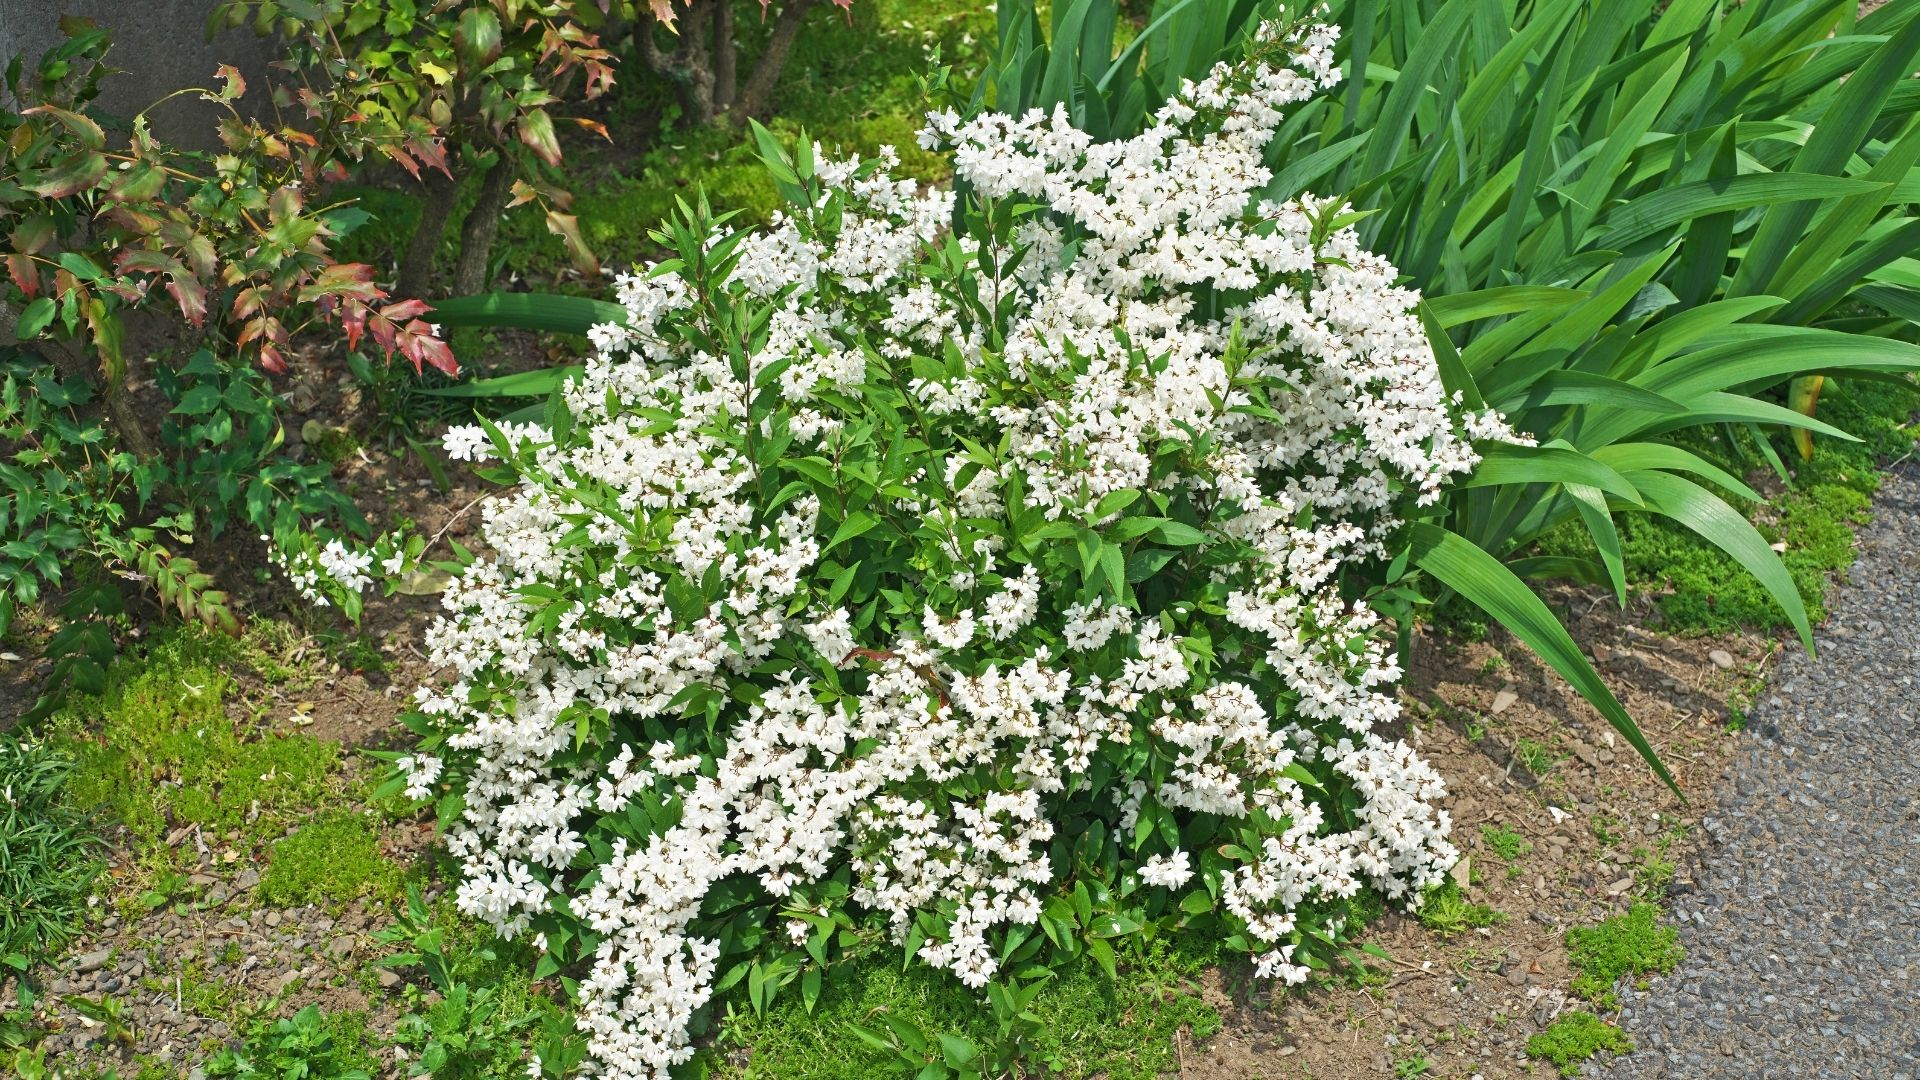 Dwarf Deutzia acting as a ground cover. Bunches of small white flowers growing through the green leaves.